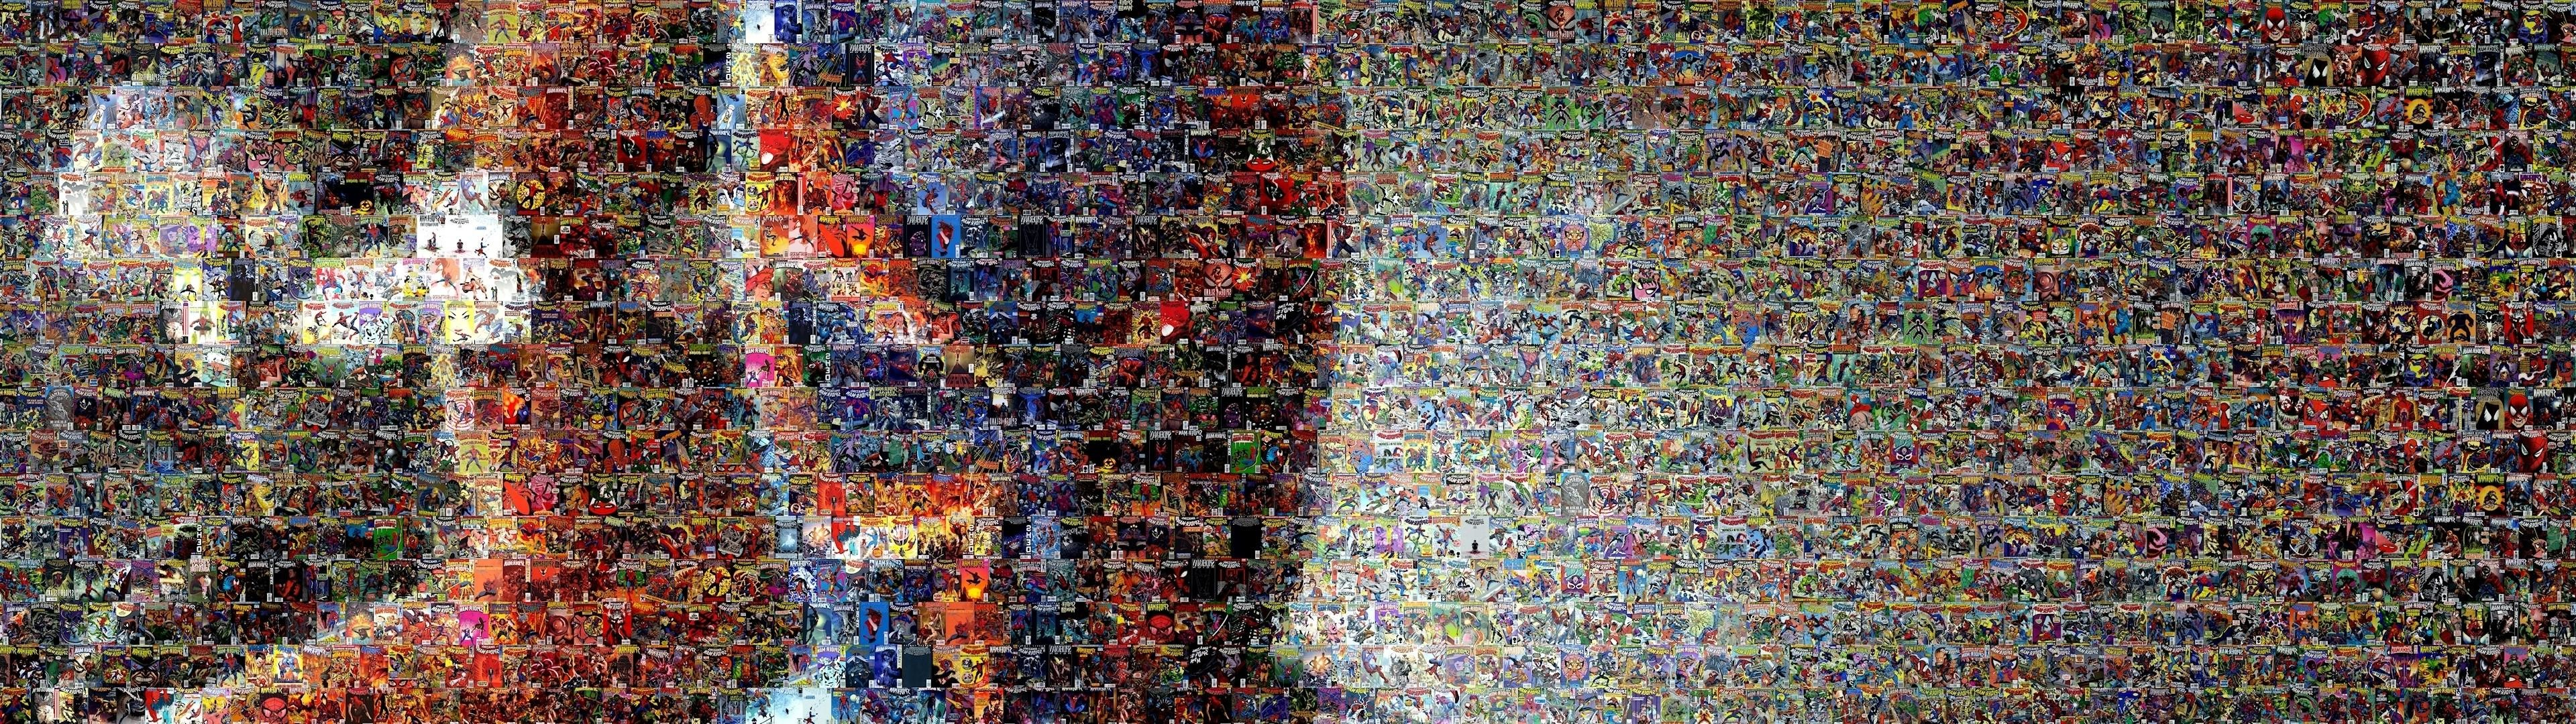 Res: 3840x1080, Spiderman Mosaic Marvel Comics Collage Multi Dual Screen abstract wallpaper Wallpapers HD / Desktop and Mobile Backgrounds